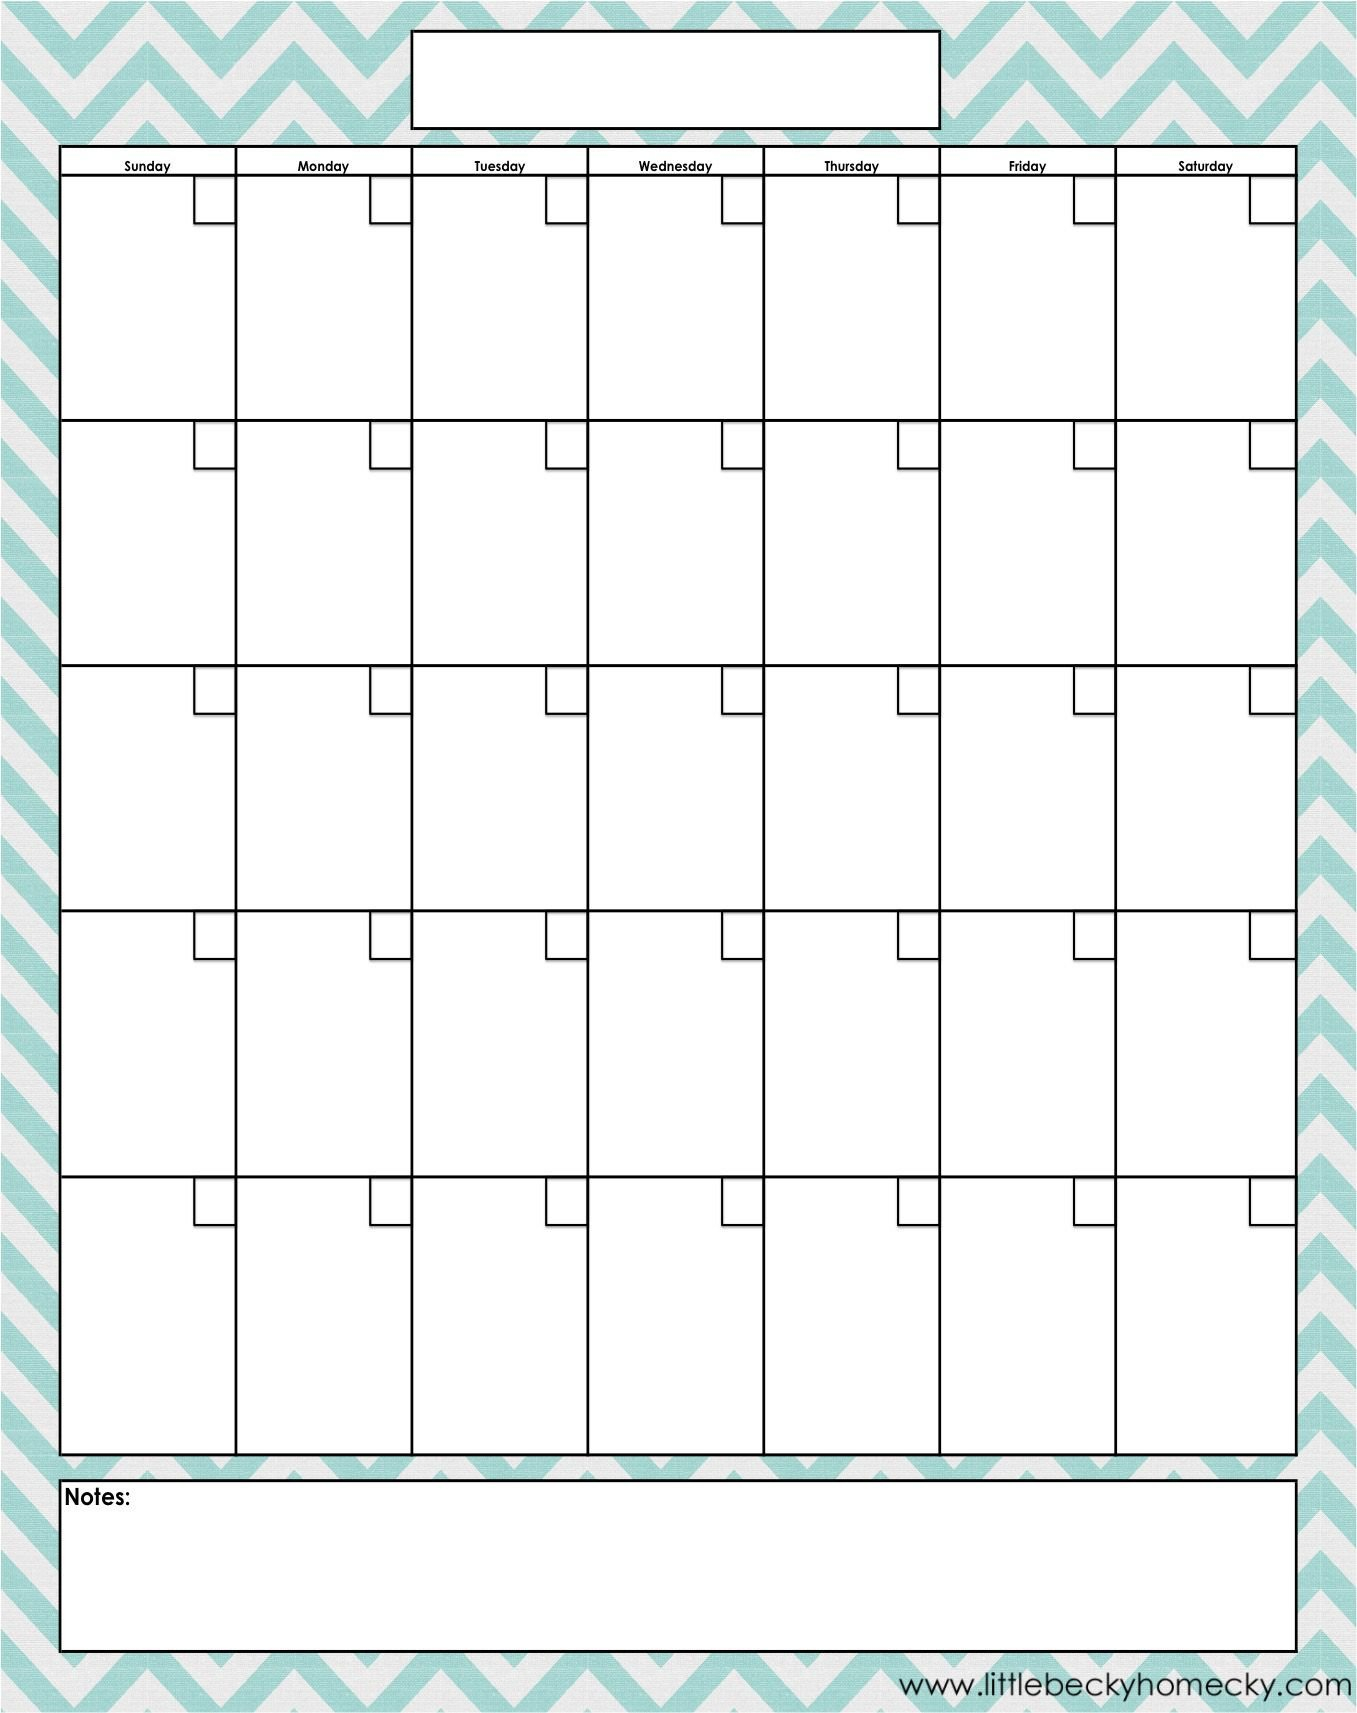 Blank Fill In Calendar | Calendar Template Printable Free Printable Fill In Calendars